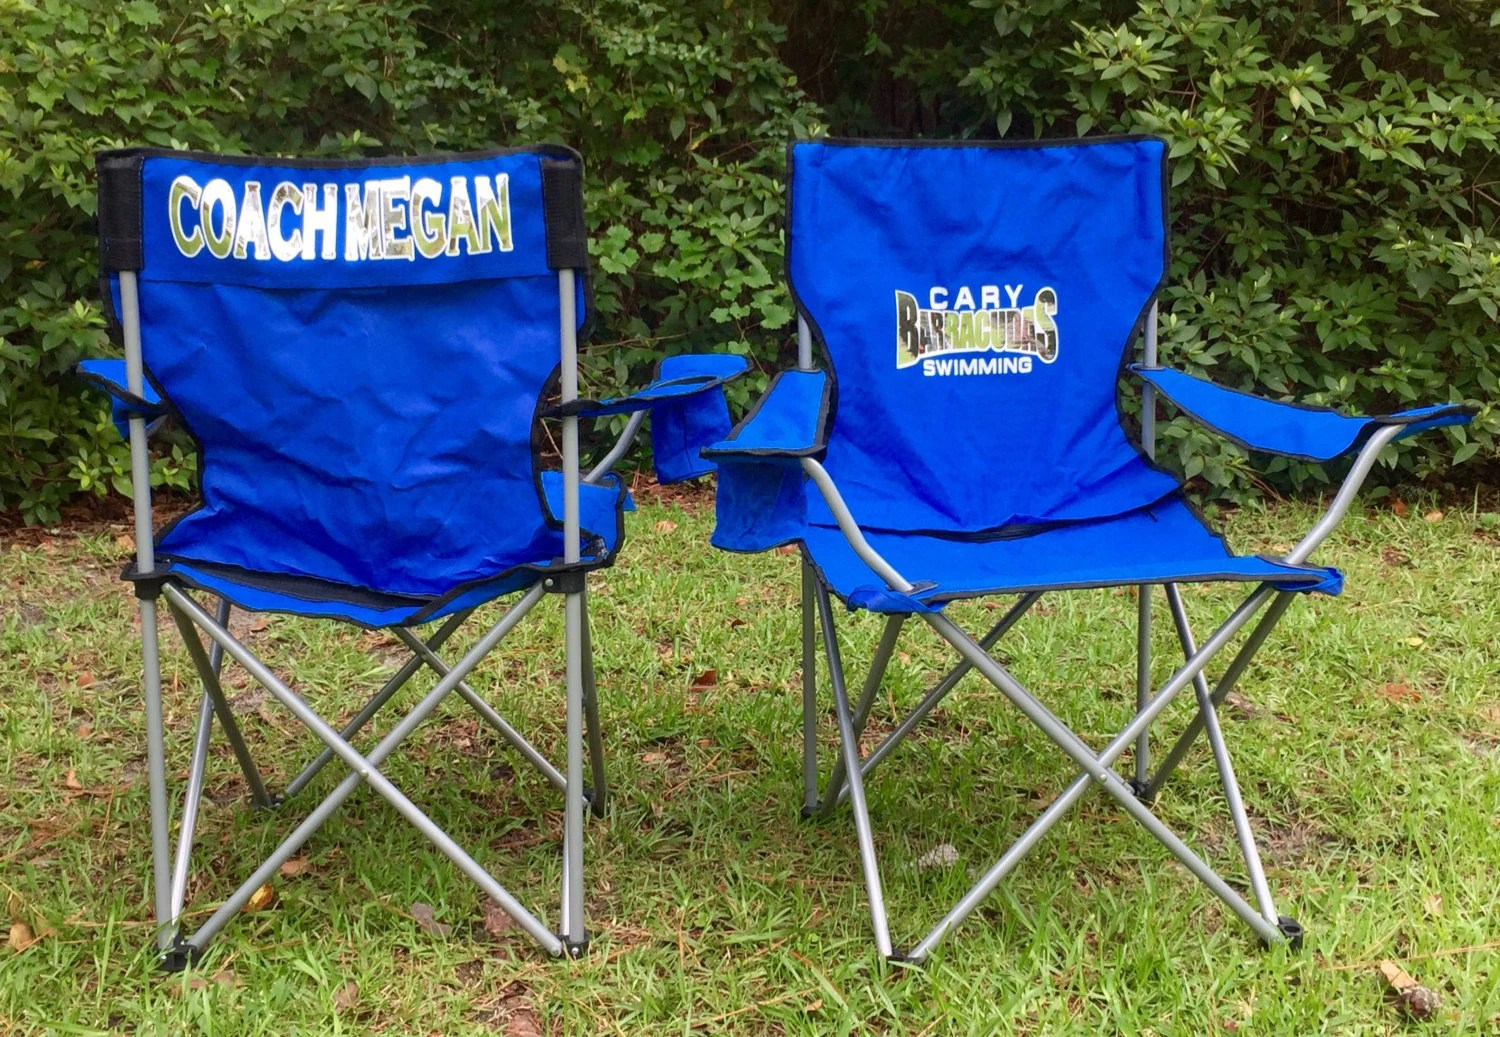 Personalized Chairs Monogrammed Chair Personalized Coach 39s Chair Camp Chair